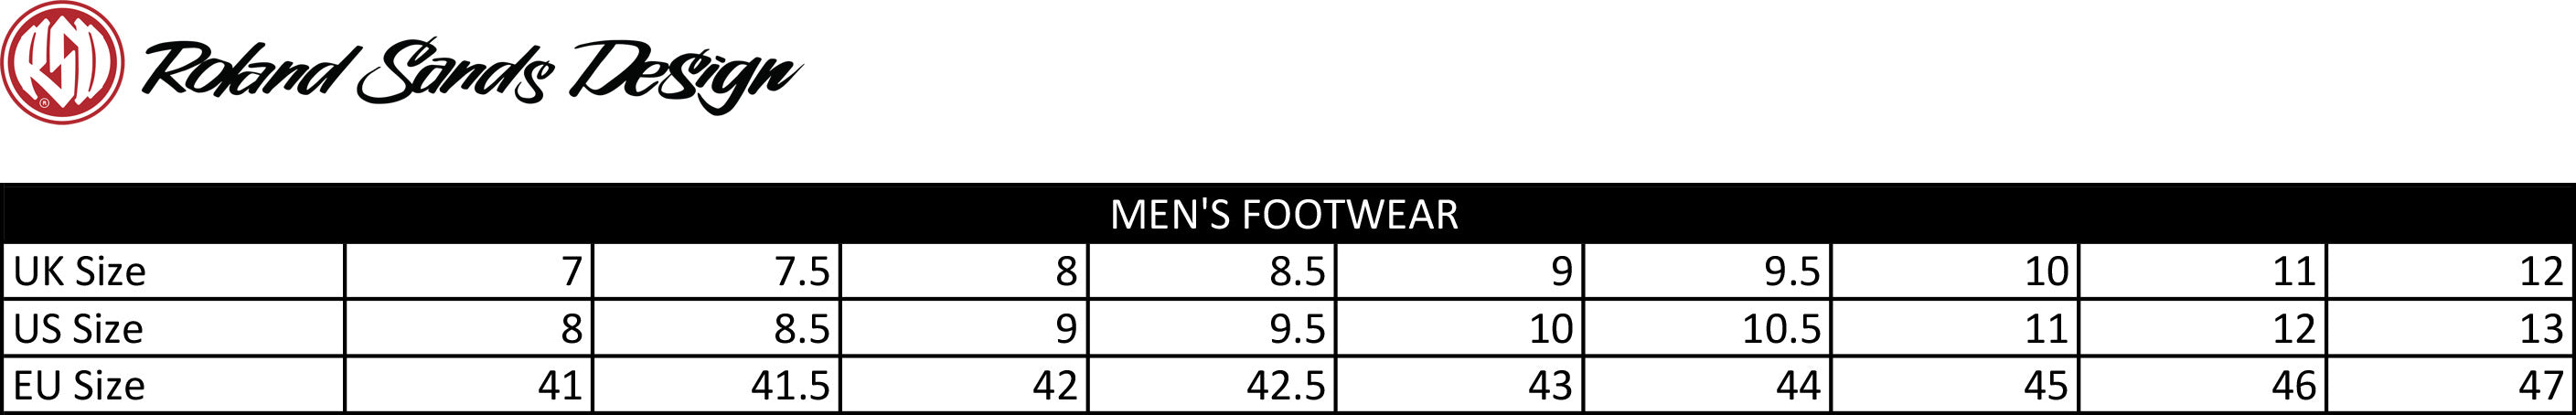 Roland Sands Design Footwear Size Chart - Salt Flats Clothing